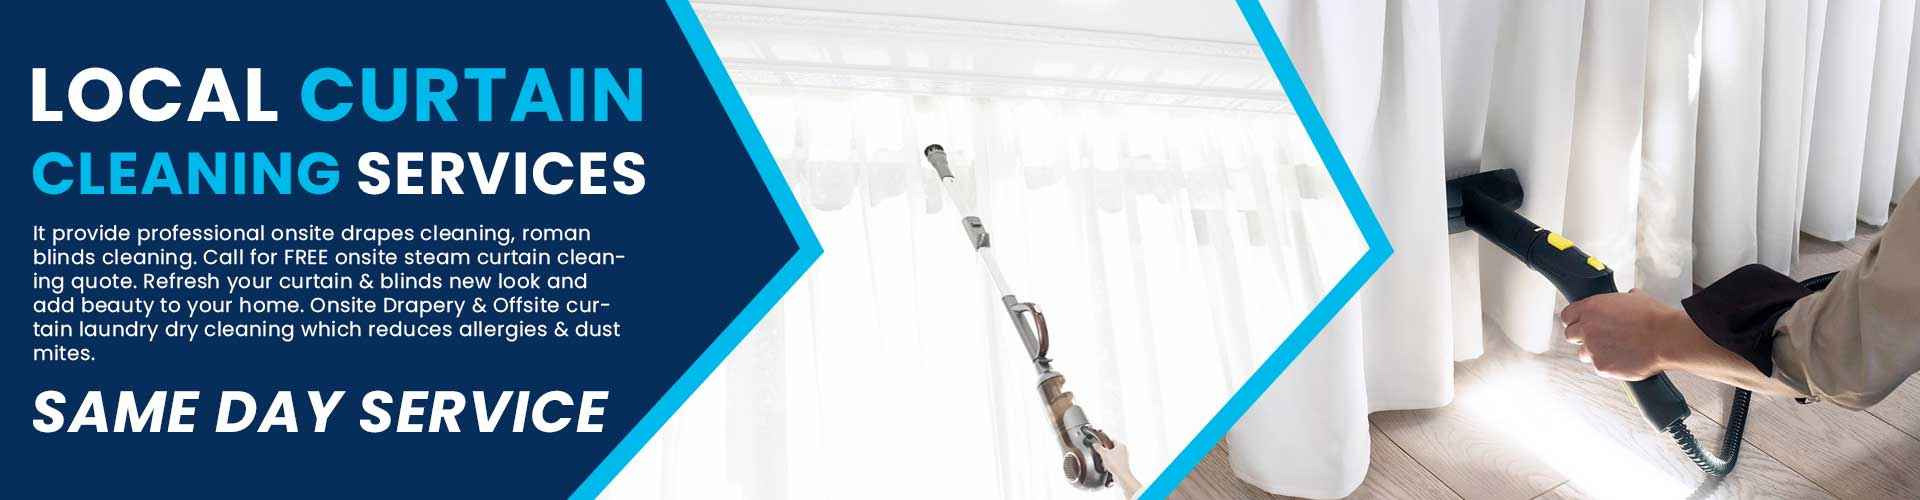 Curtain Cleaning Sydney Curtain Cleaning Brisbane 0410 453 896 Sparkling Cleaning Services